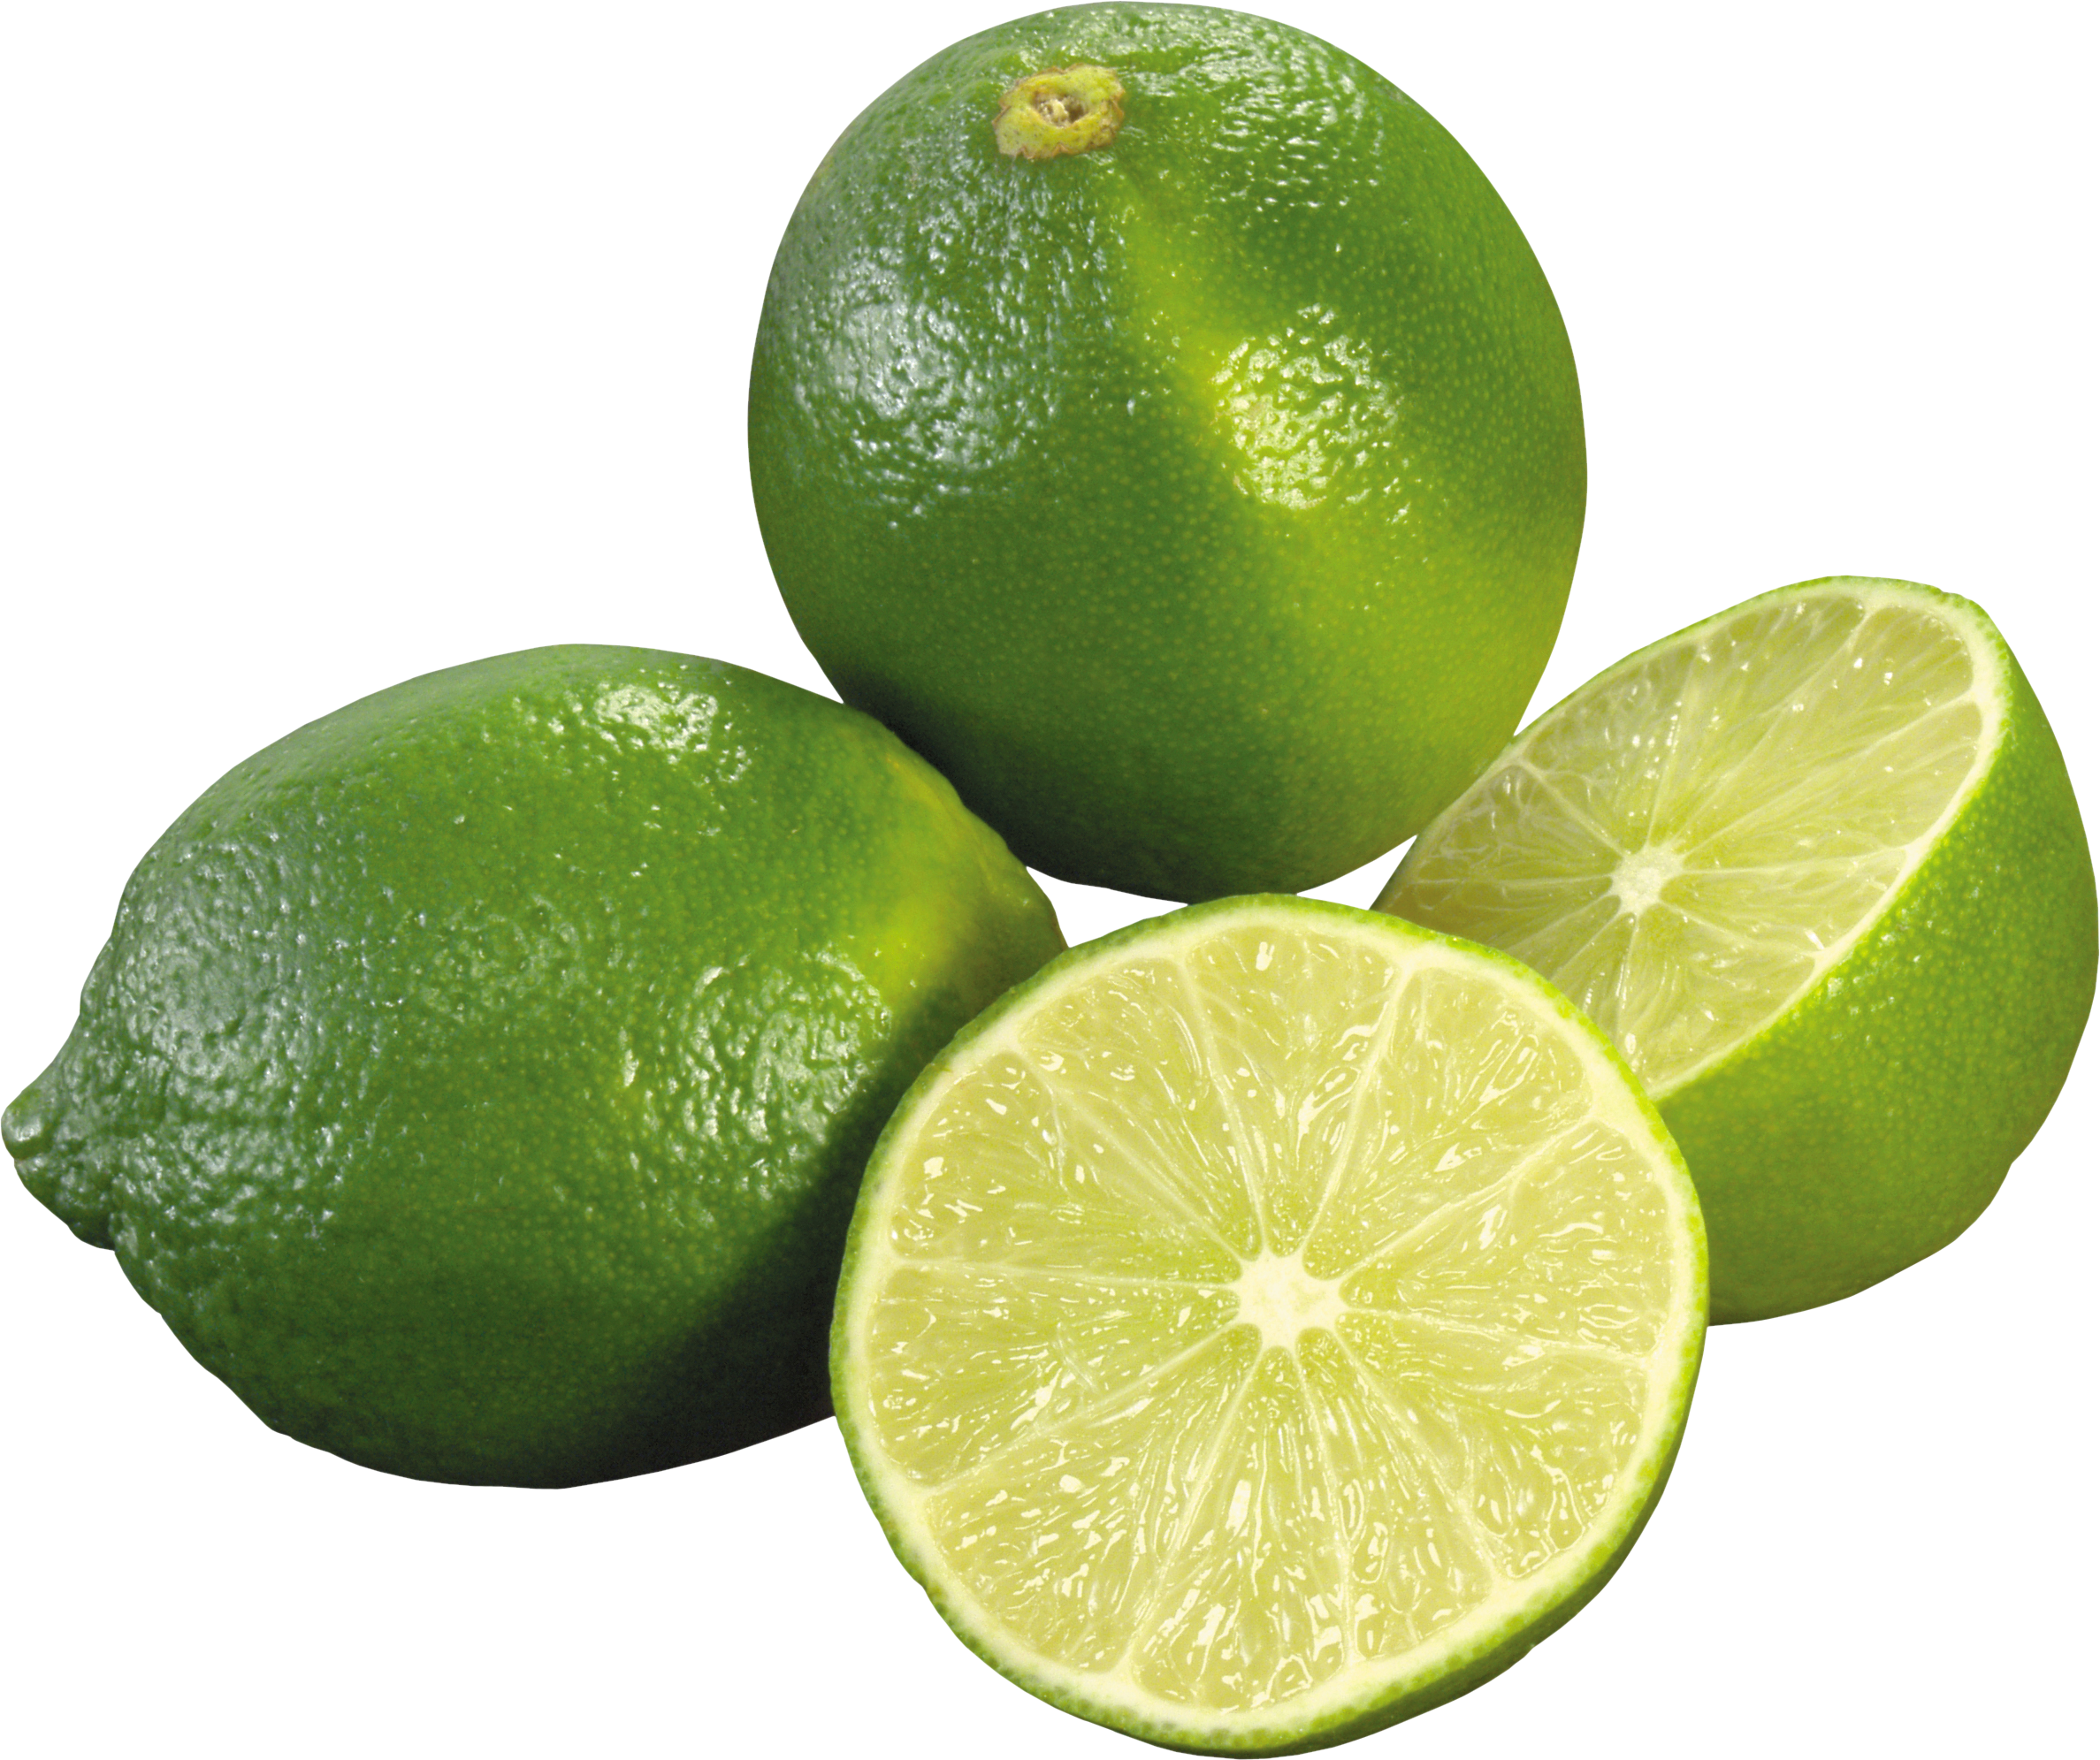 Green lemon png. Image